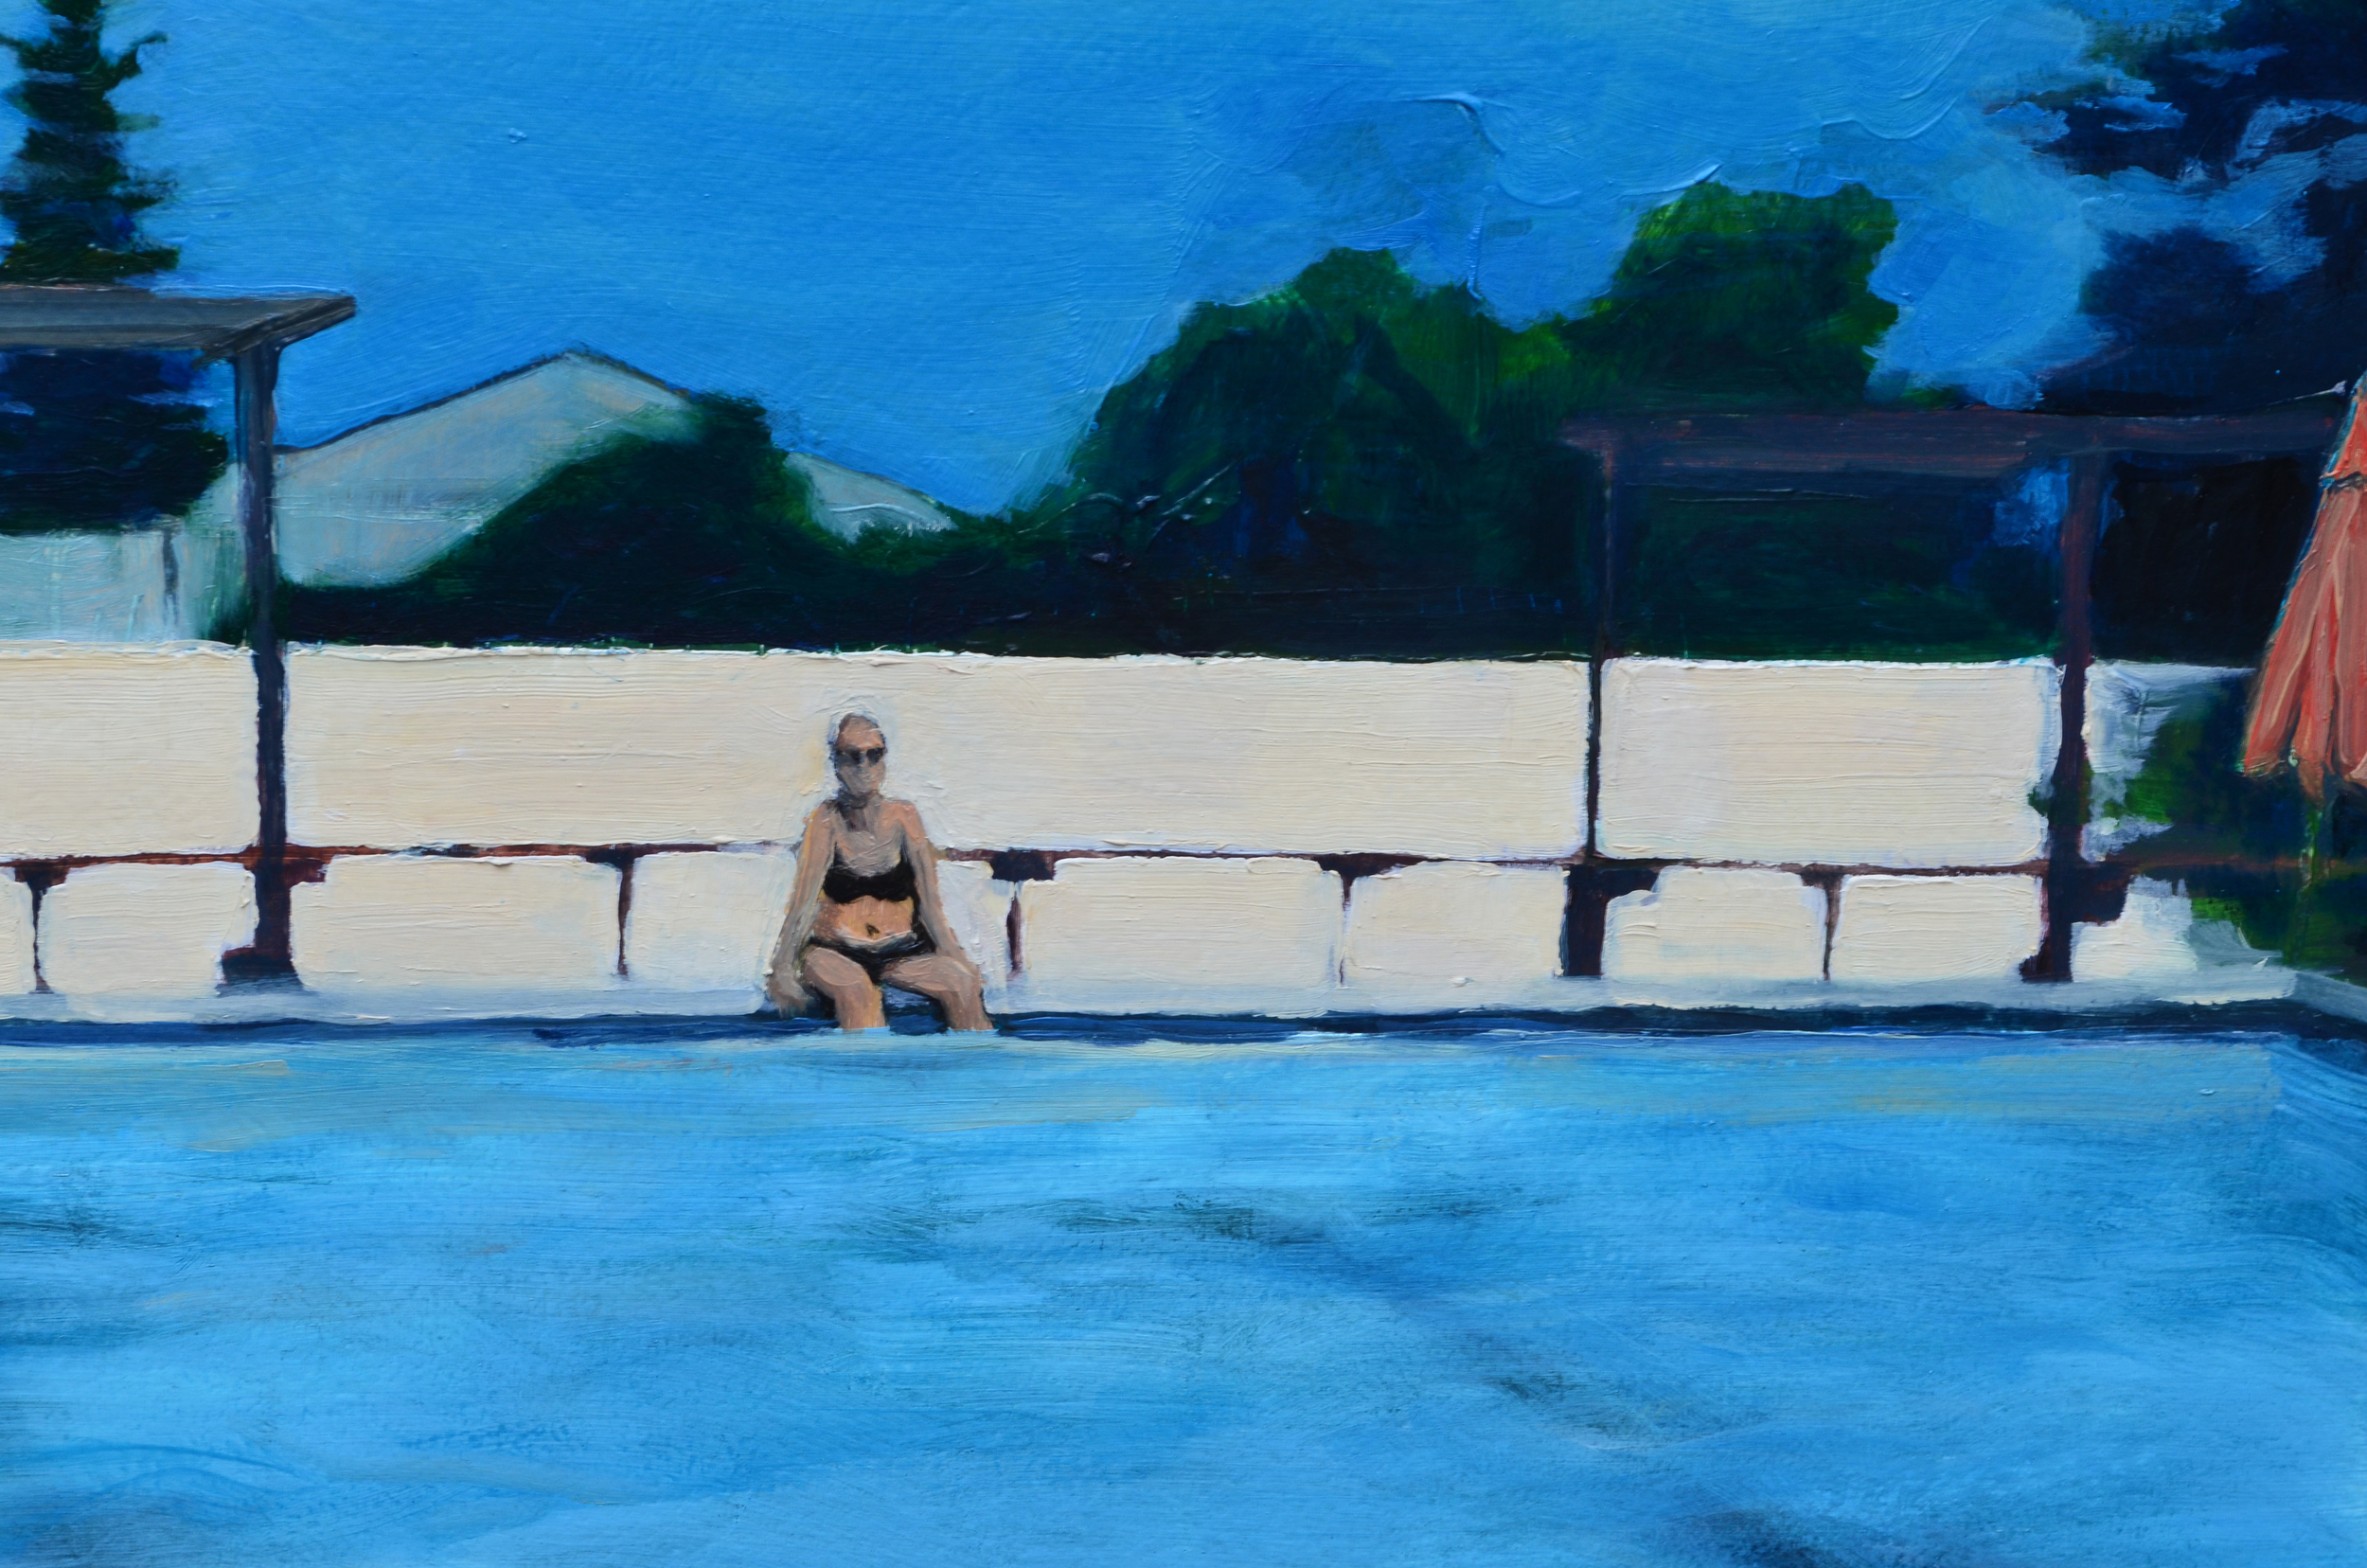 Pool , detail.  2014. Oil on Panel. 15.75 x 30 inches. sold.